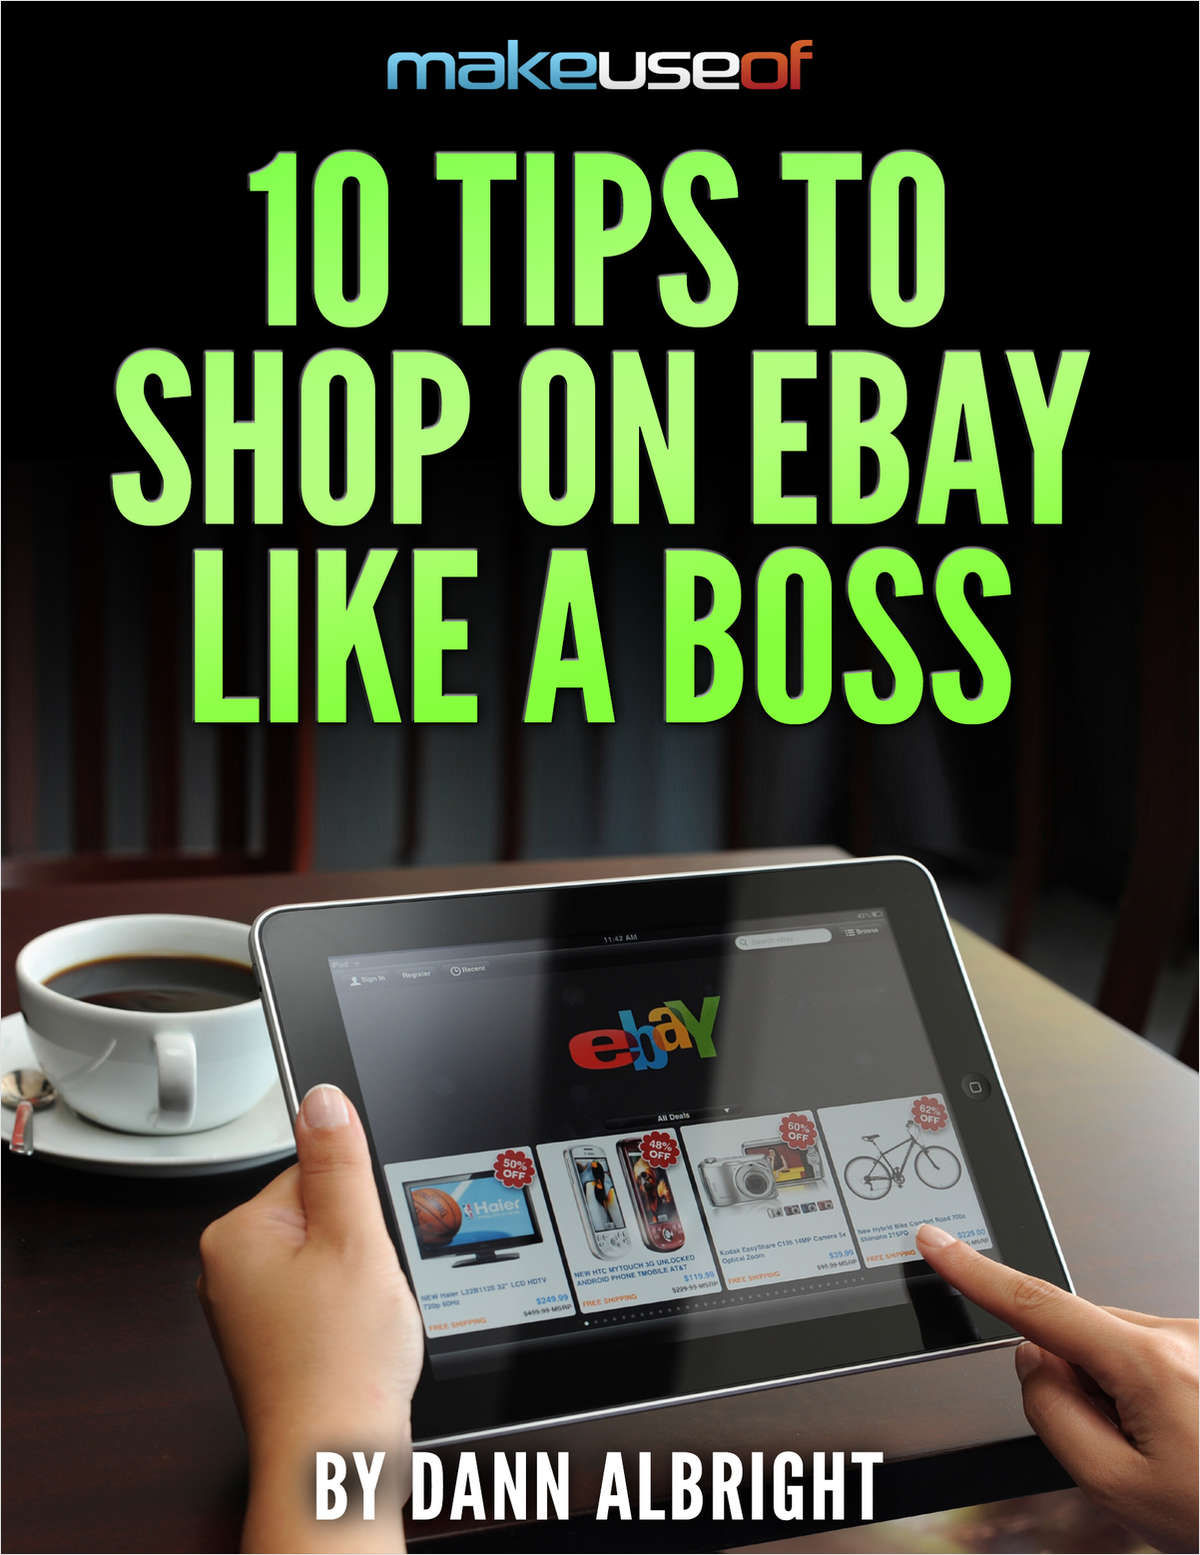 10 Tips to Shop on eBay Like a Boss